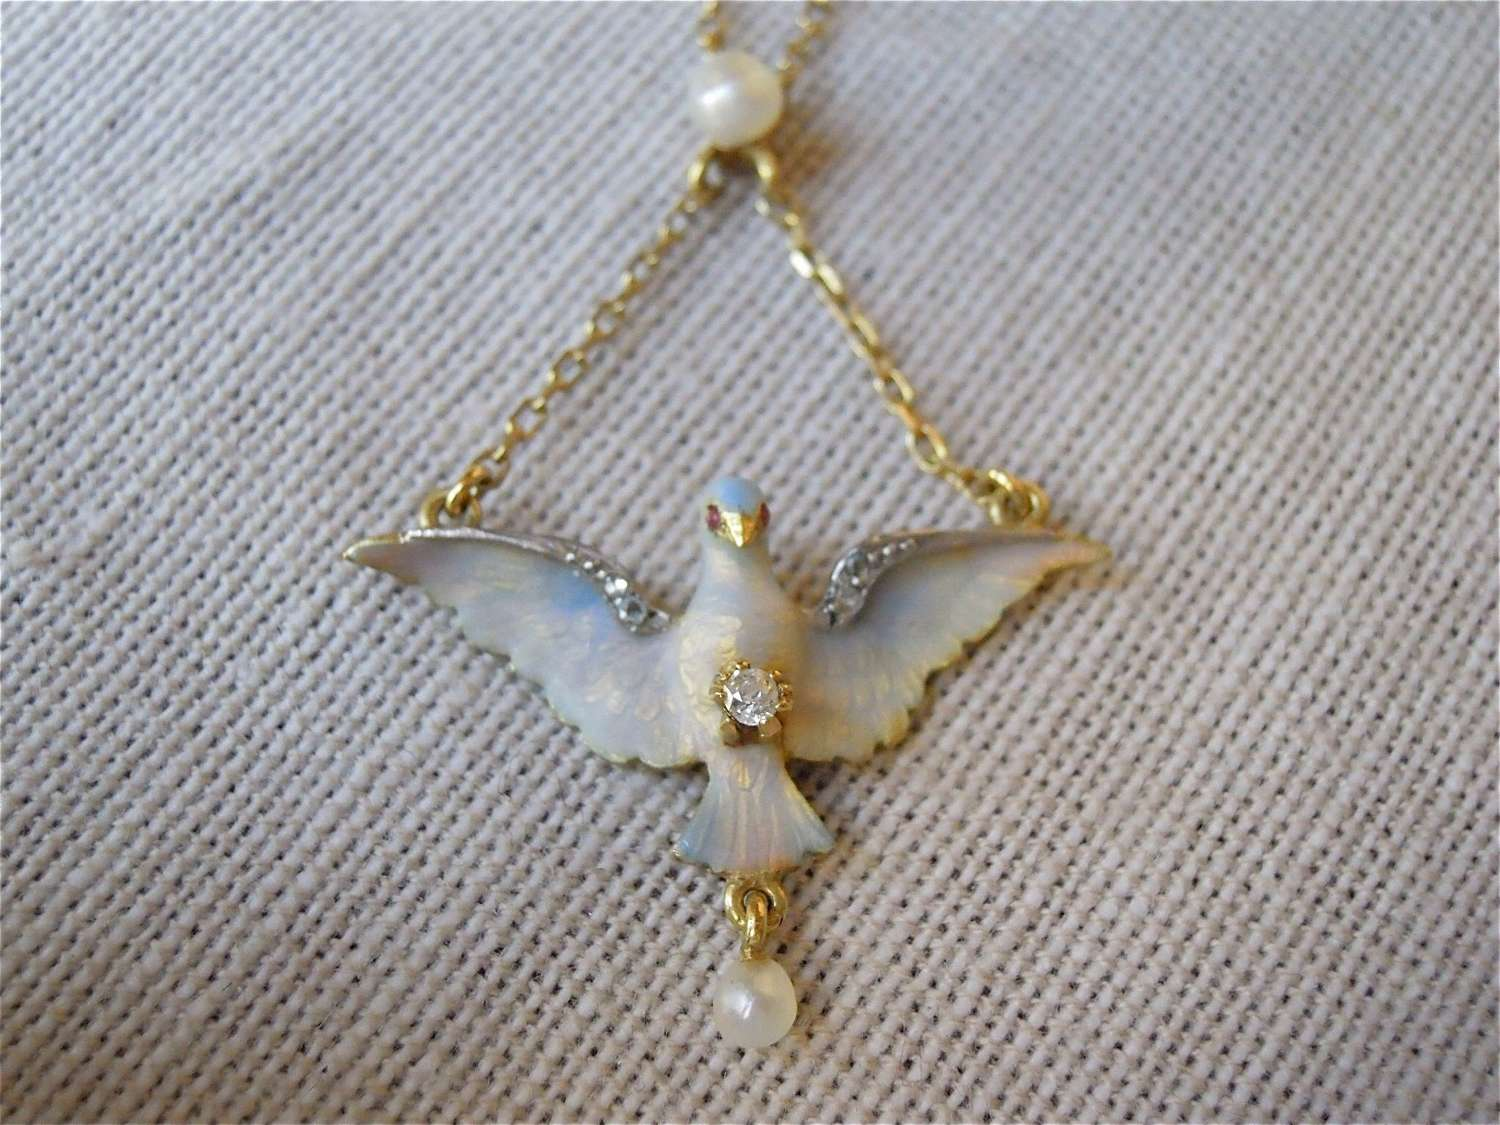 Antique 18ct gold, enamel, pearl and diamond pendant of bird